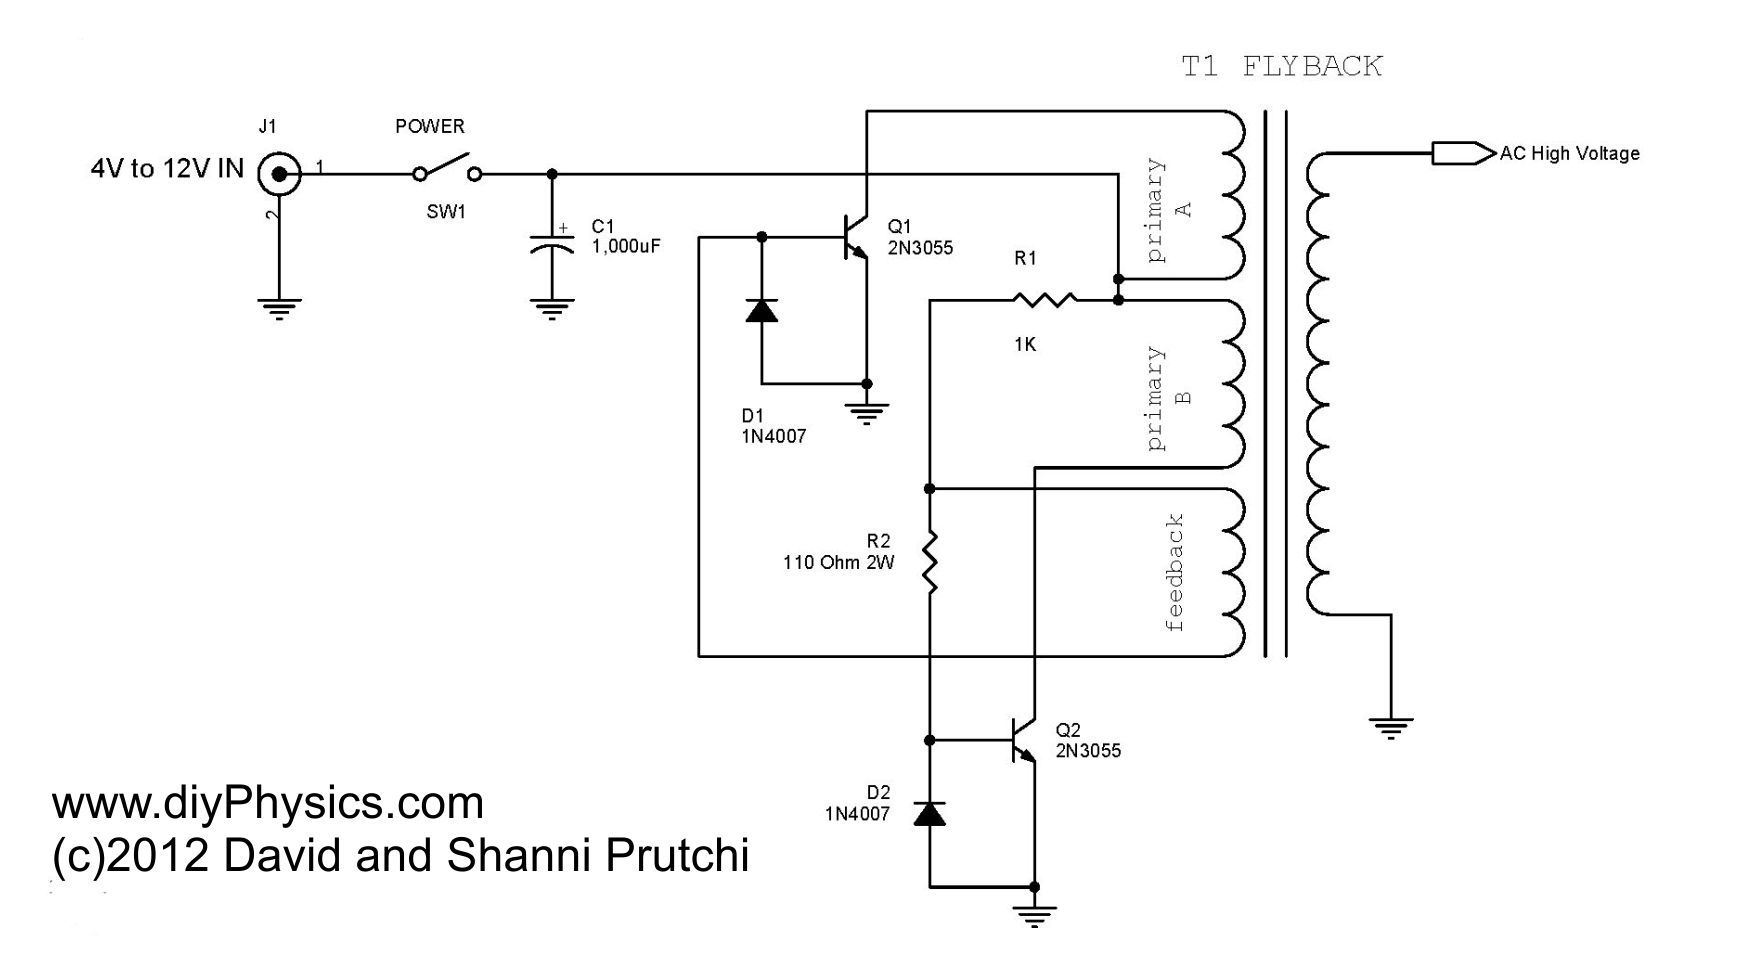 hight resolution of high voltage ac driver for 250 kv dc power supply by david and shanni prutchi